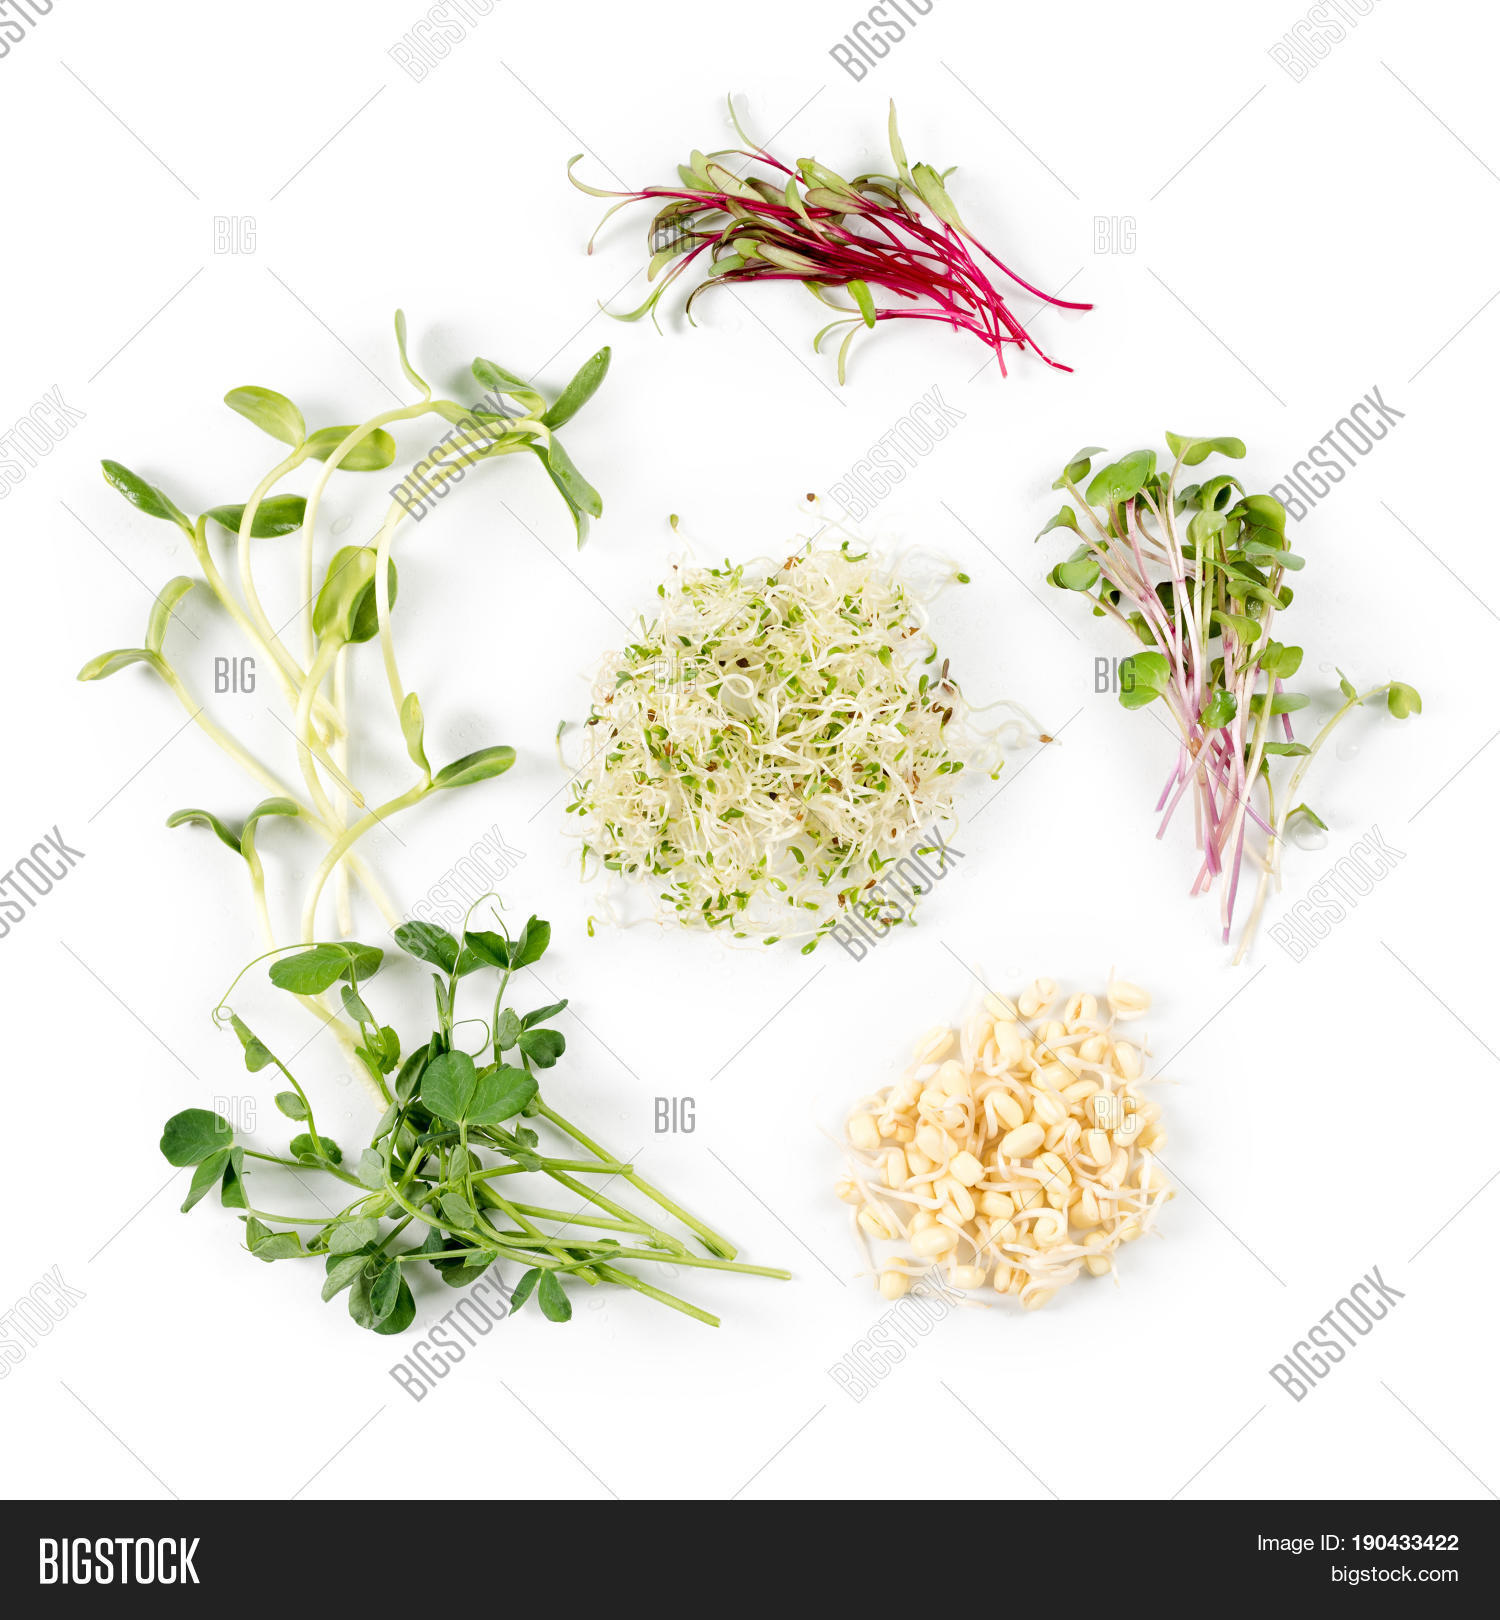 Different Types Micro Image Photo Free Trial Bigstock